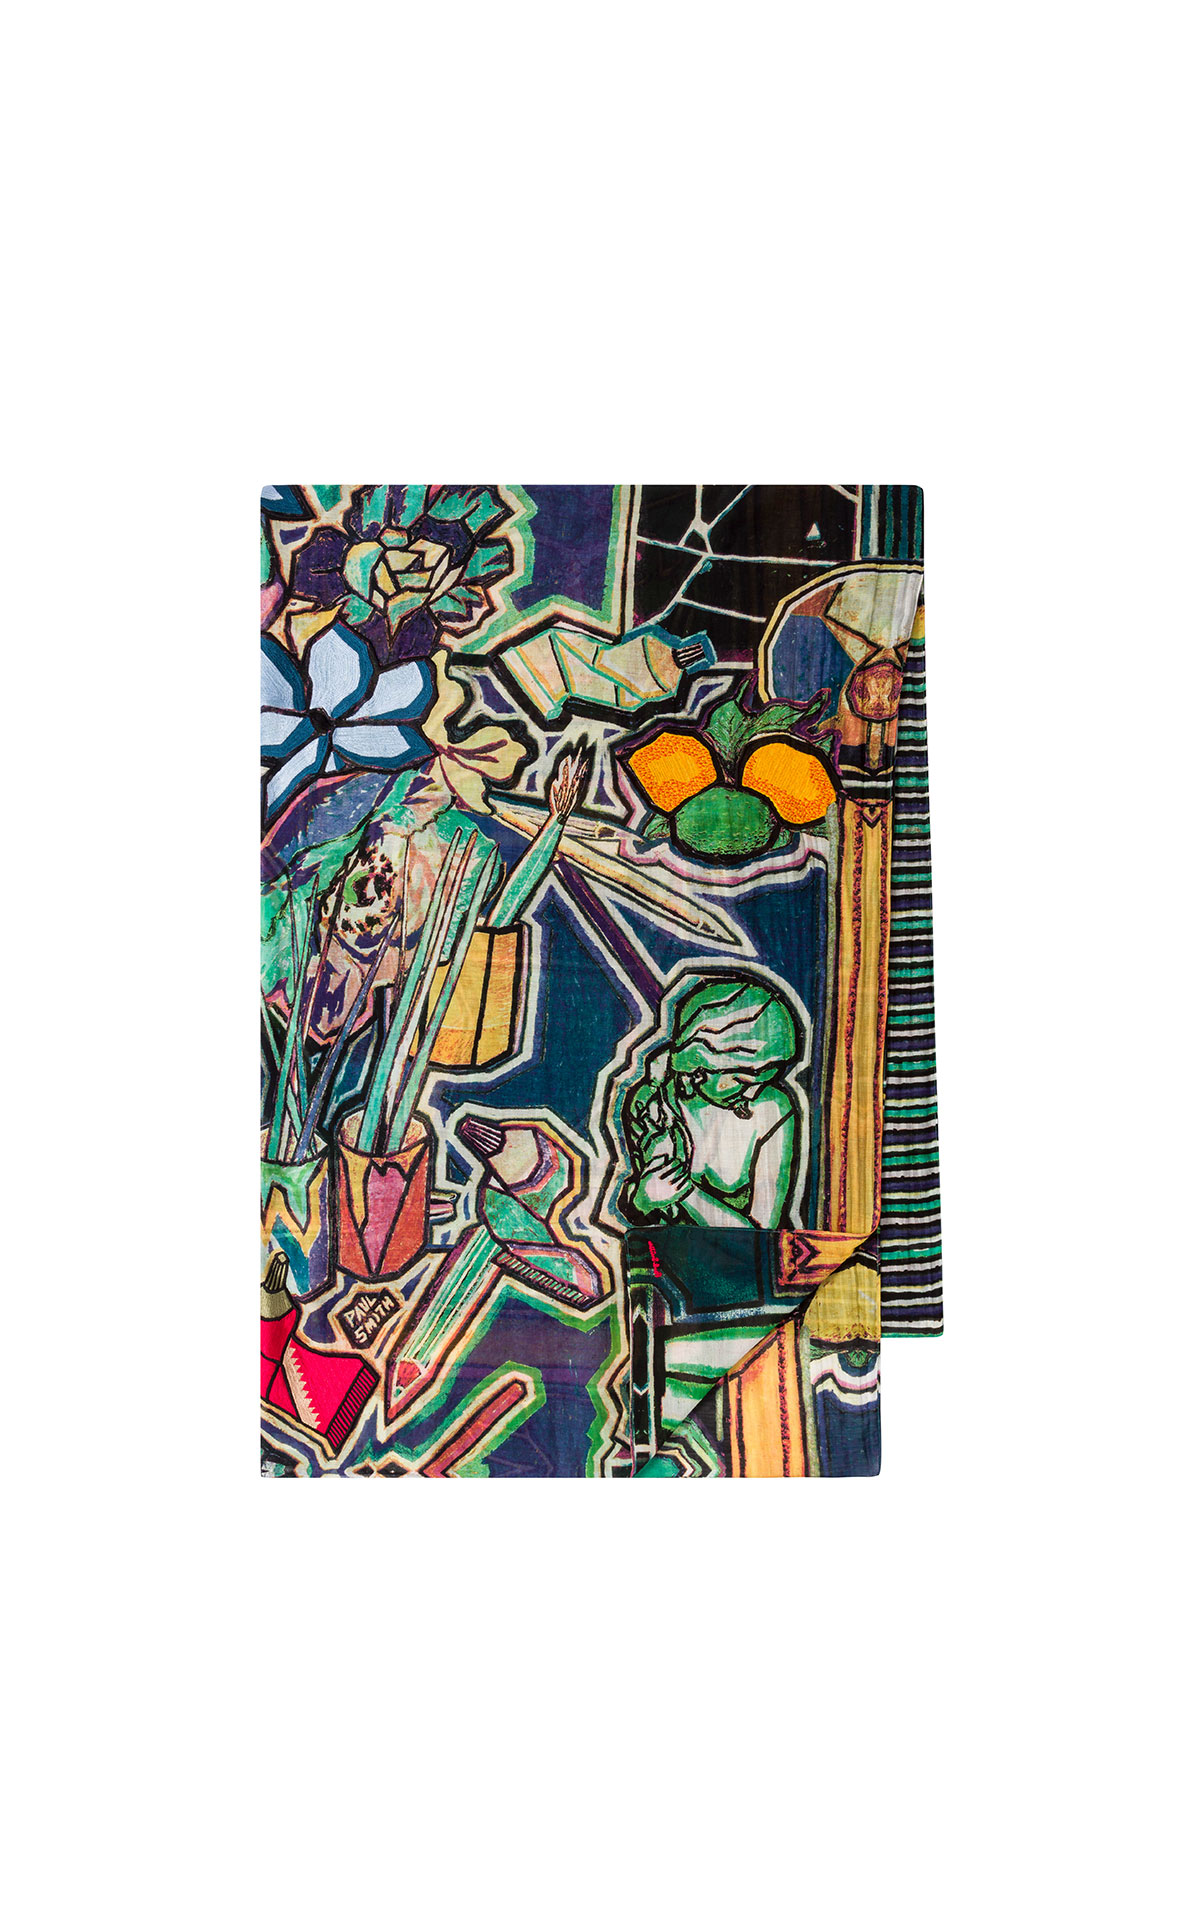 Paul Smith Women's Artist Studio Scarf at the Bicester Village Shopping Collection